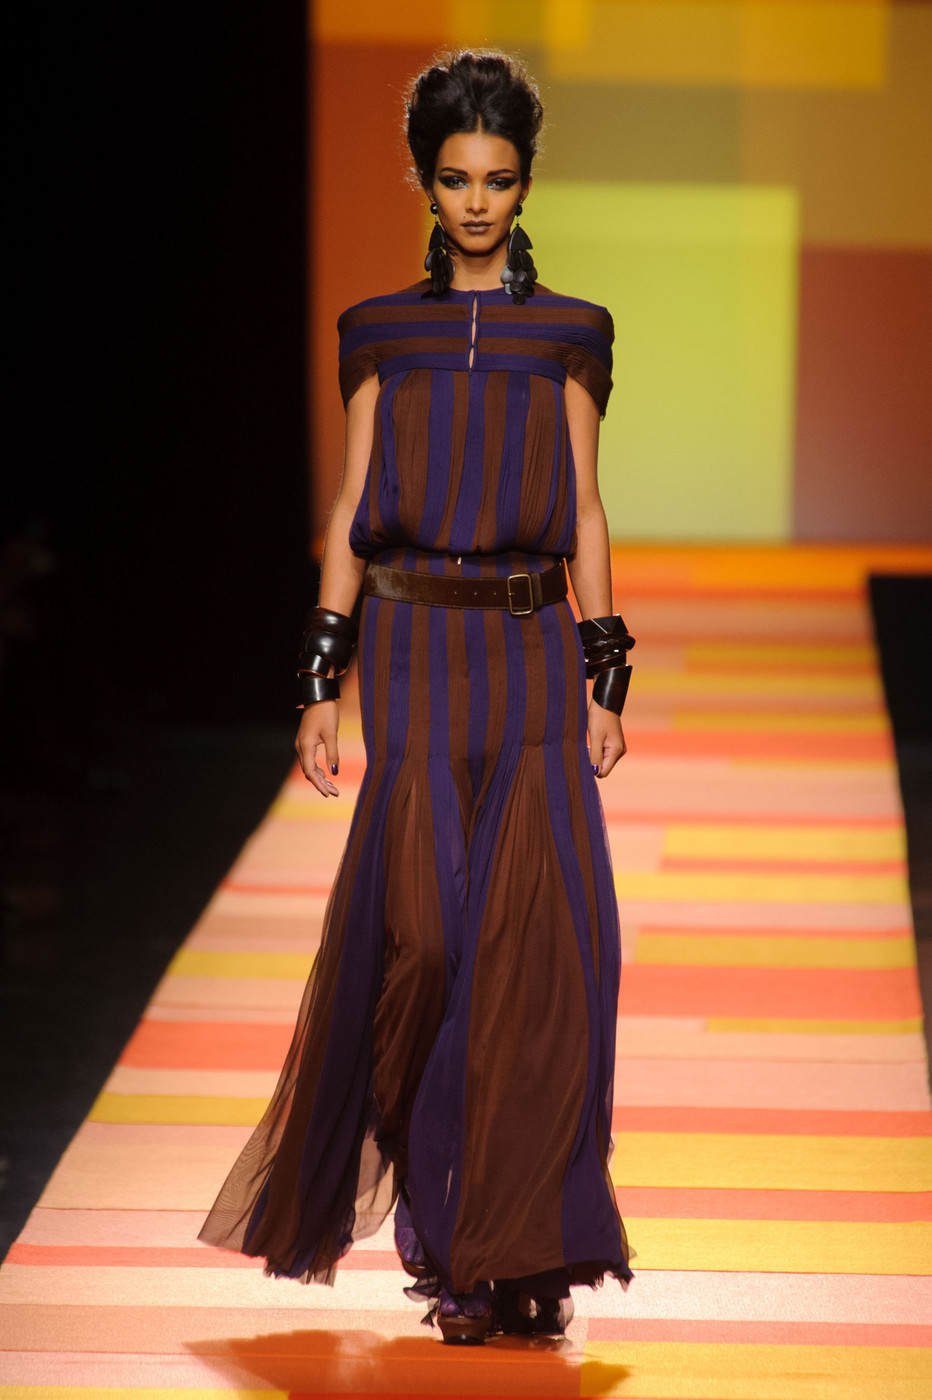 jean paul gaultier at couture spring 2013 livingly. Black Bedroom Furniture Sets. Home Design Ideas